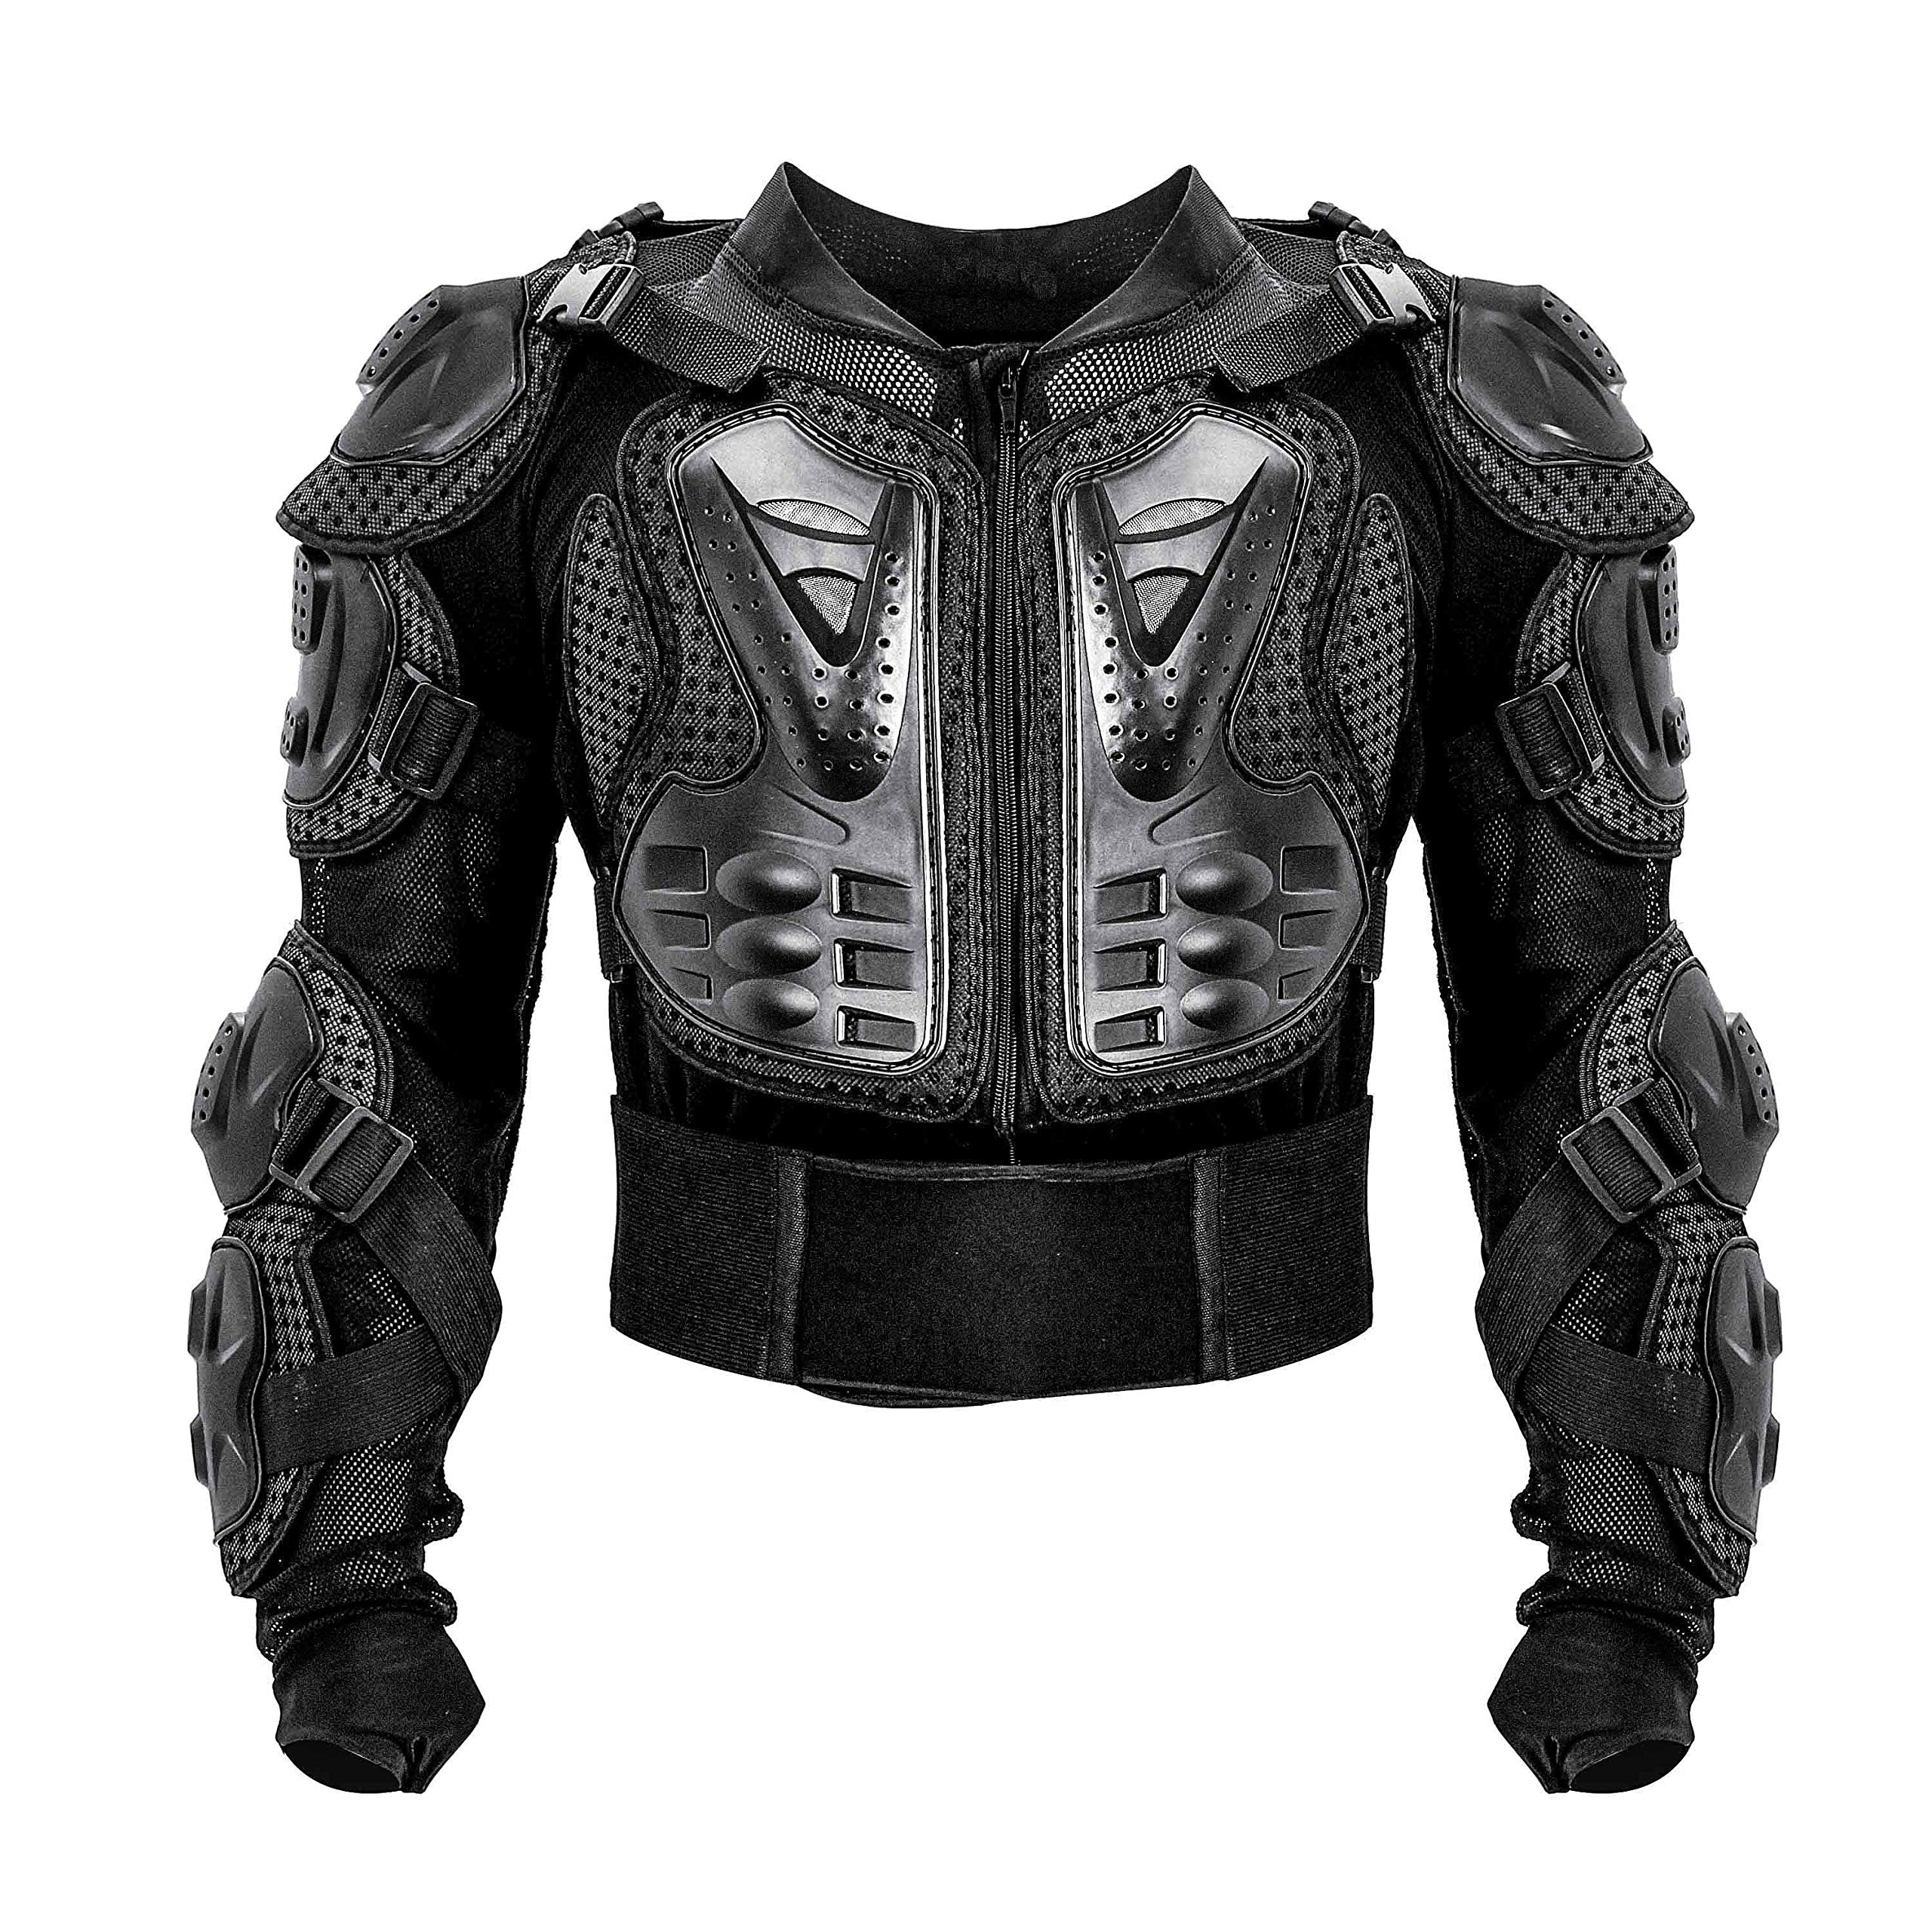 Motorcycle Full Body Armor Protective Jacket ATV Guard Shirt Gear Jacket Armor Pro Street Motocross Protector with Back Protection Men Women for Off-Road Racing Dirt Bike Skiing Skating Black L by GOHINSTAR